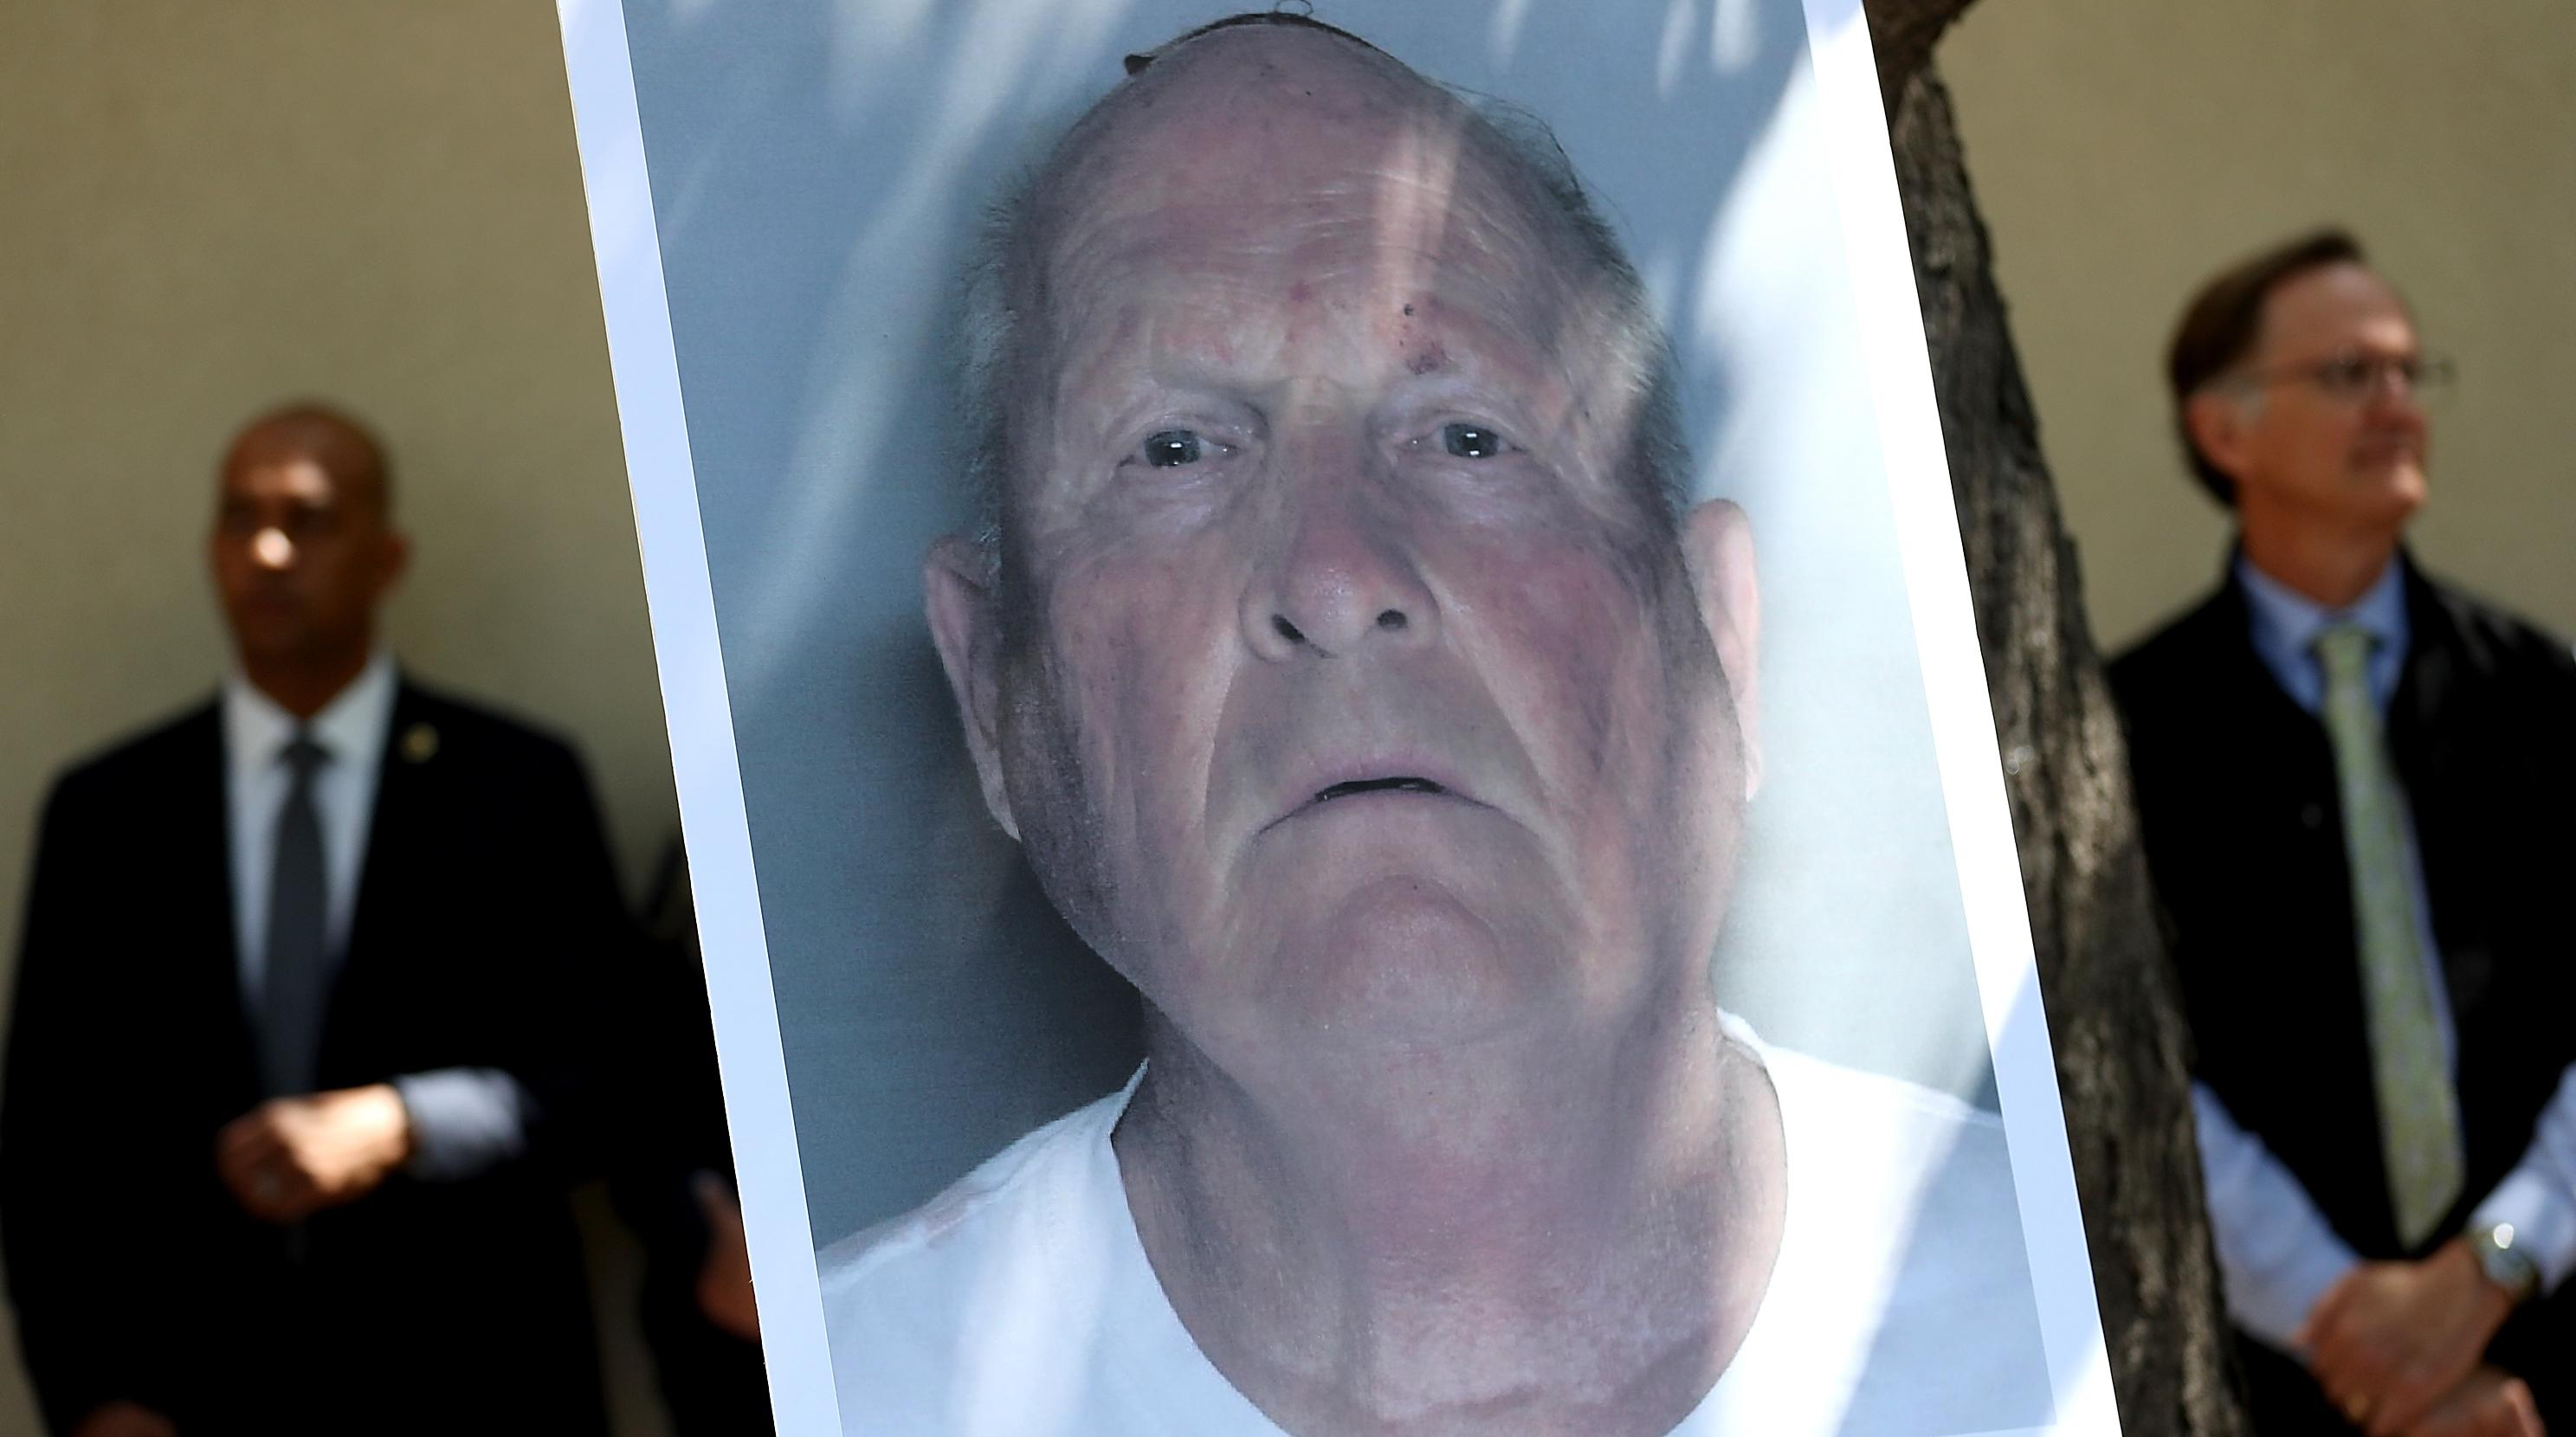 The Golden State Killer Was Caught in 2018